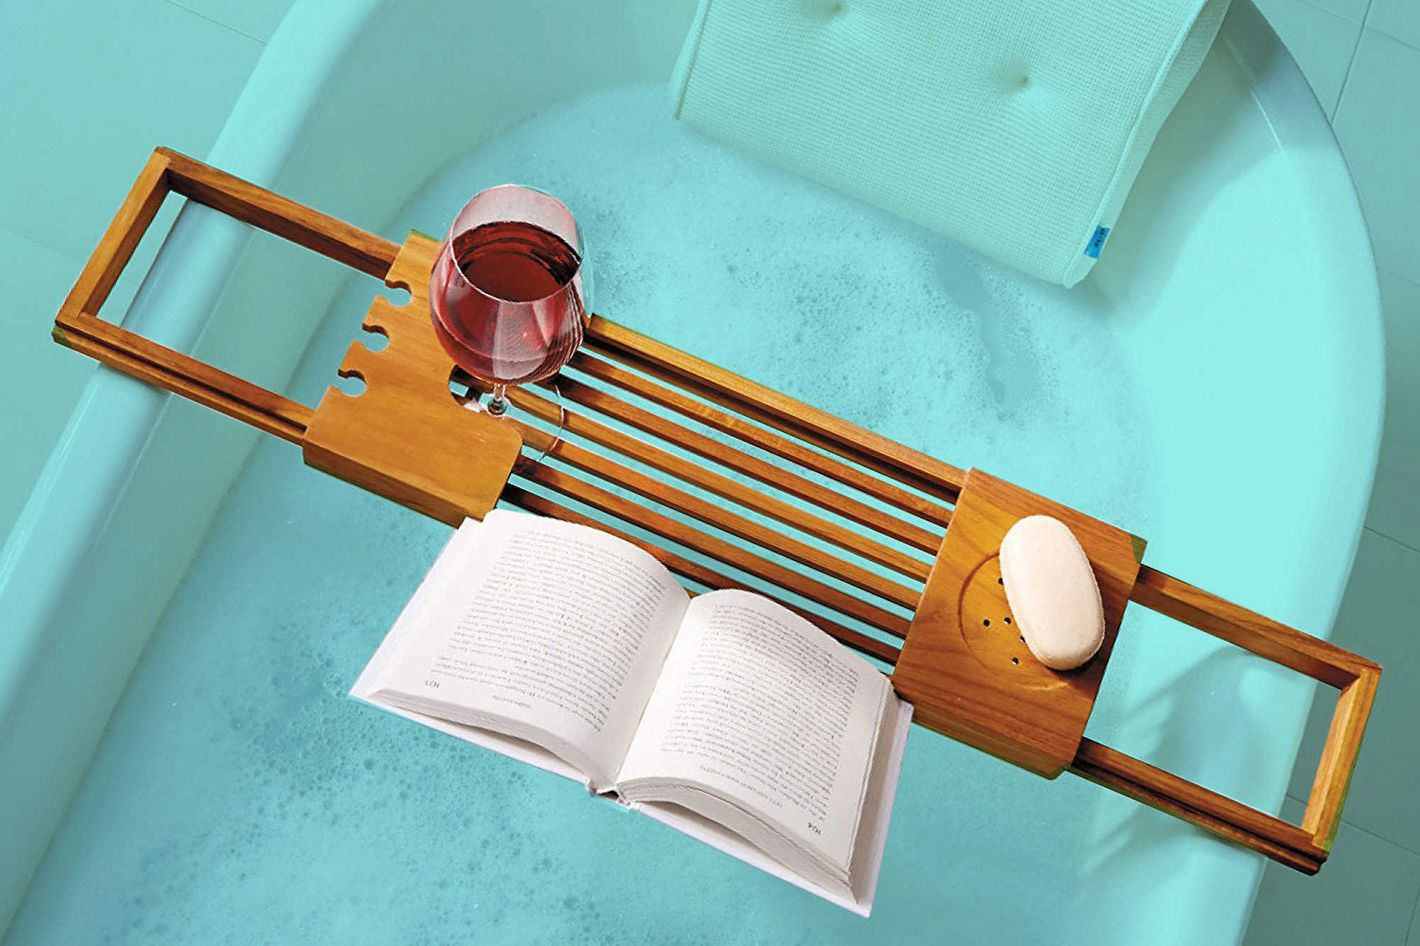 Best Bathtub Tray for Reading, Drinking Wine and Lounging